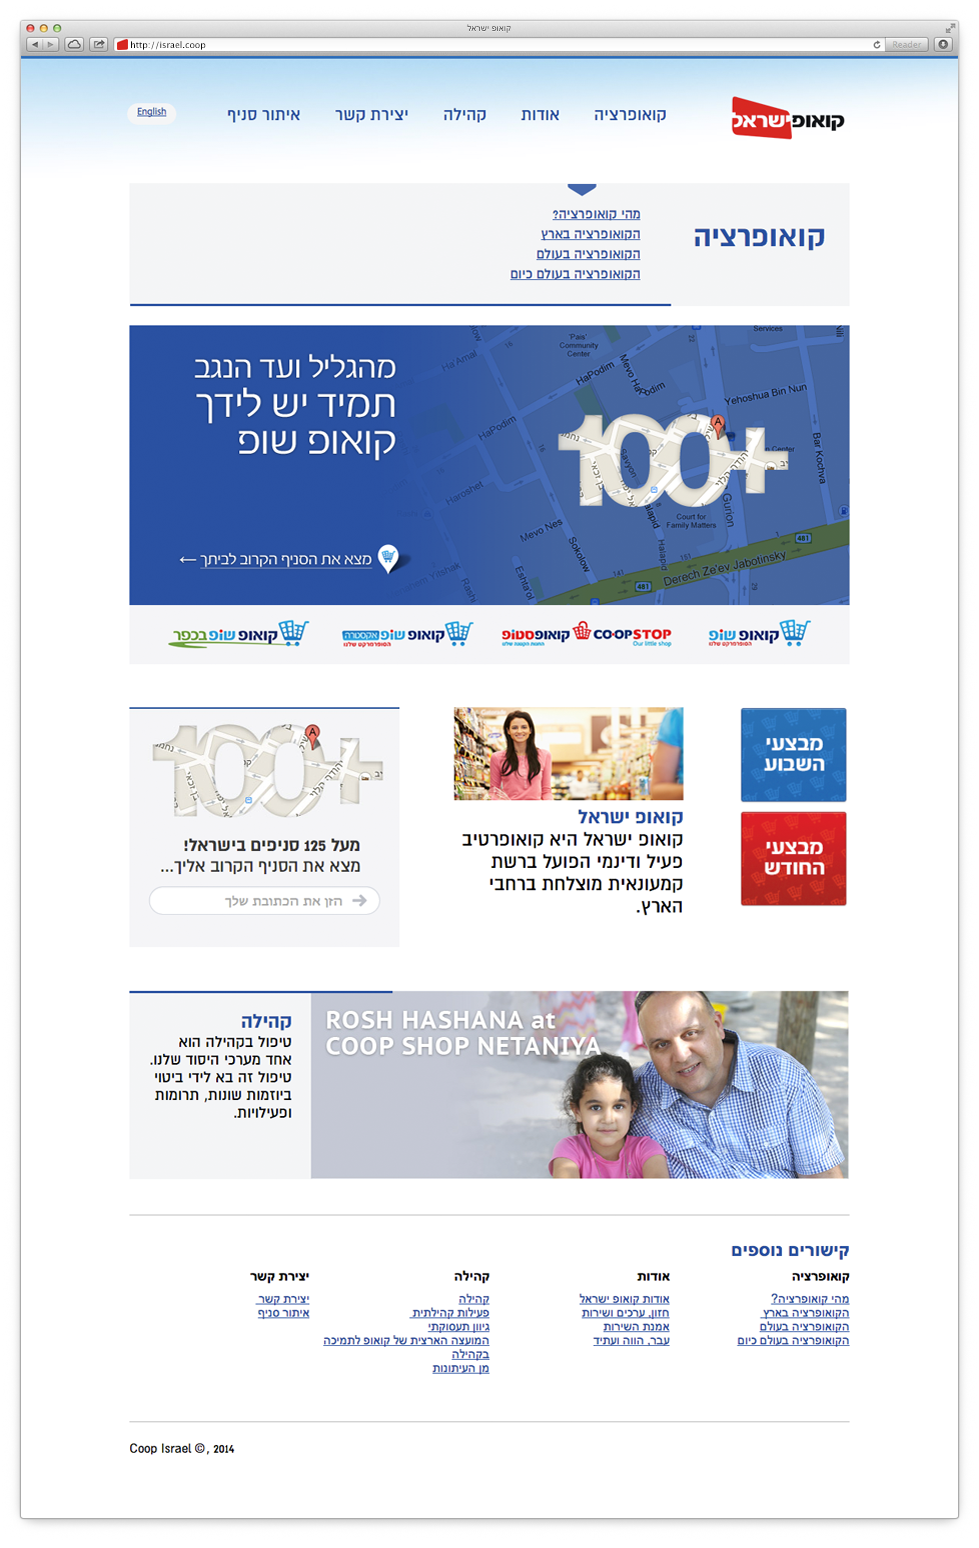 Building the Web Site for the Coop Israel Chain